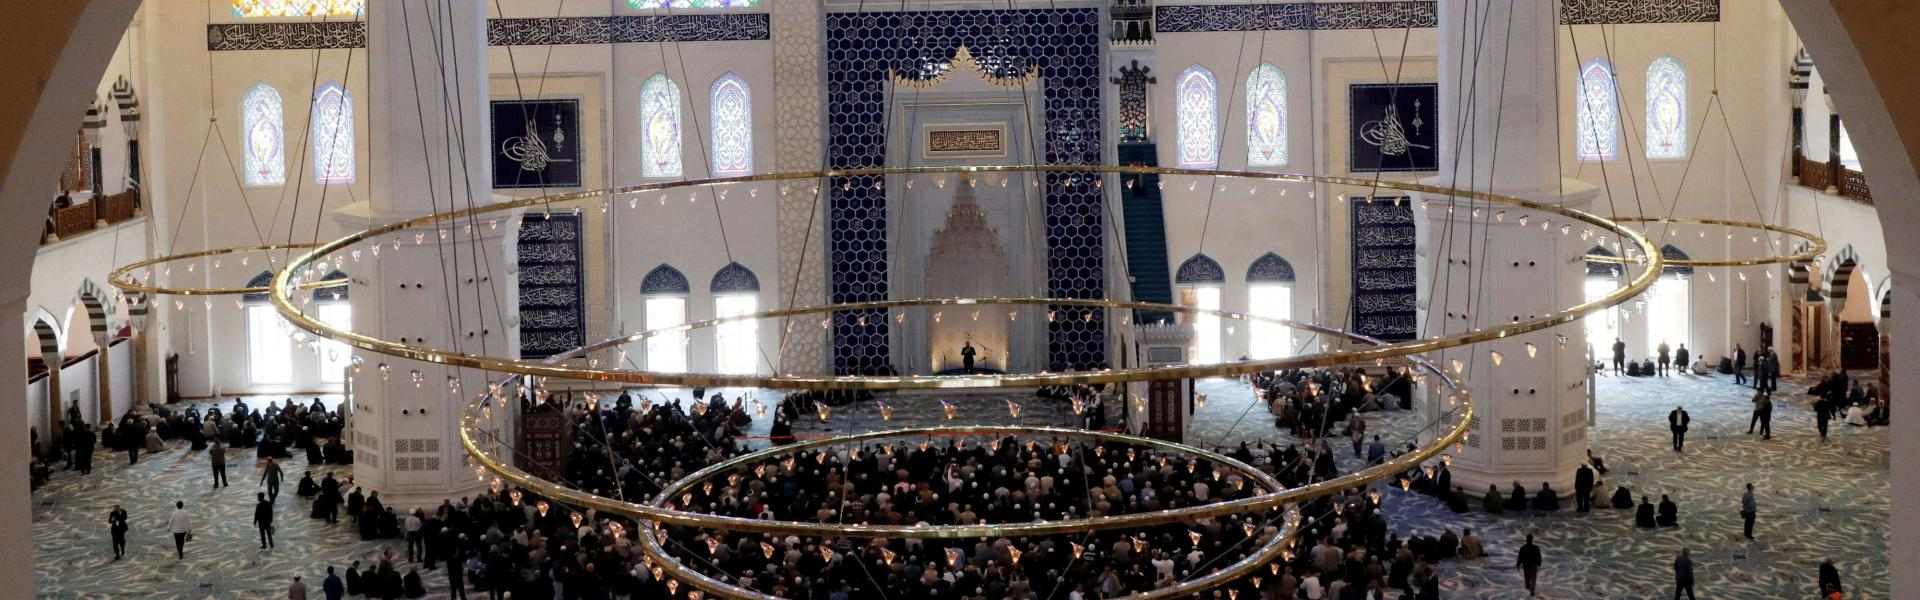 Turkey ranks 95th among 155 countries worldwide in Islamic values